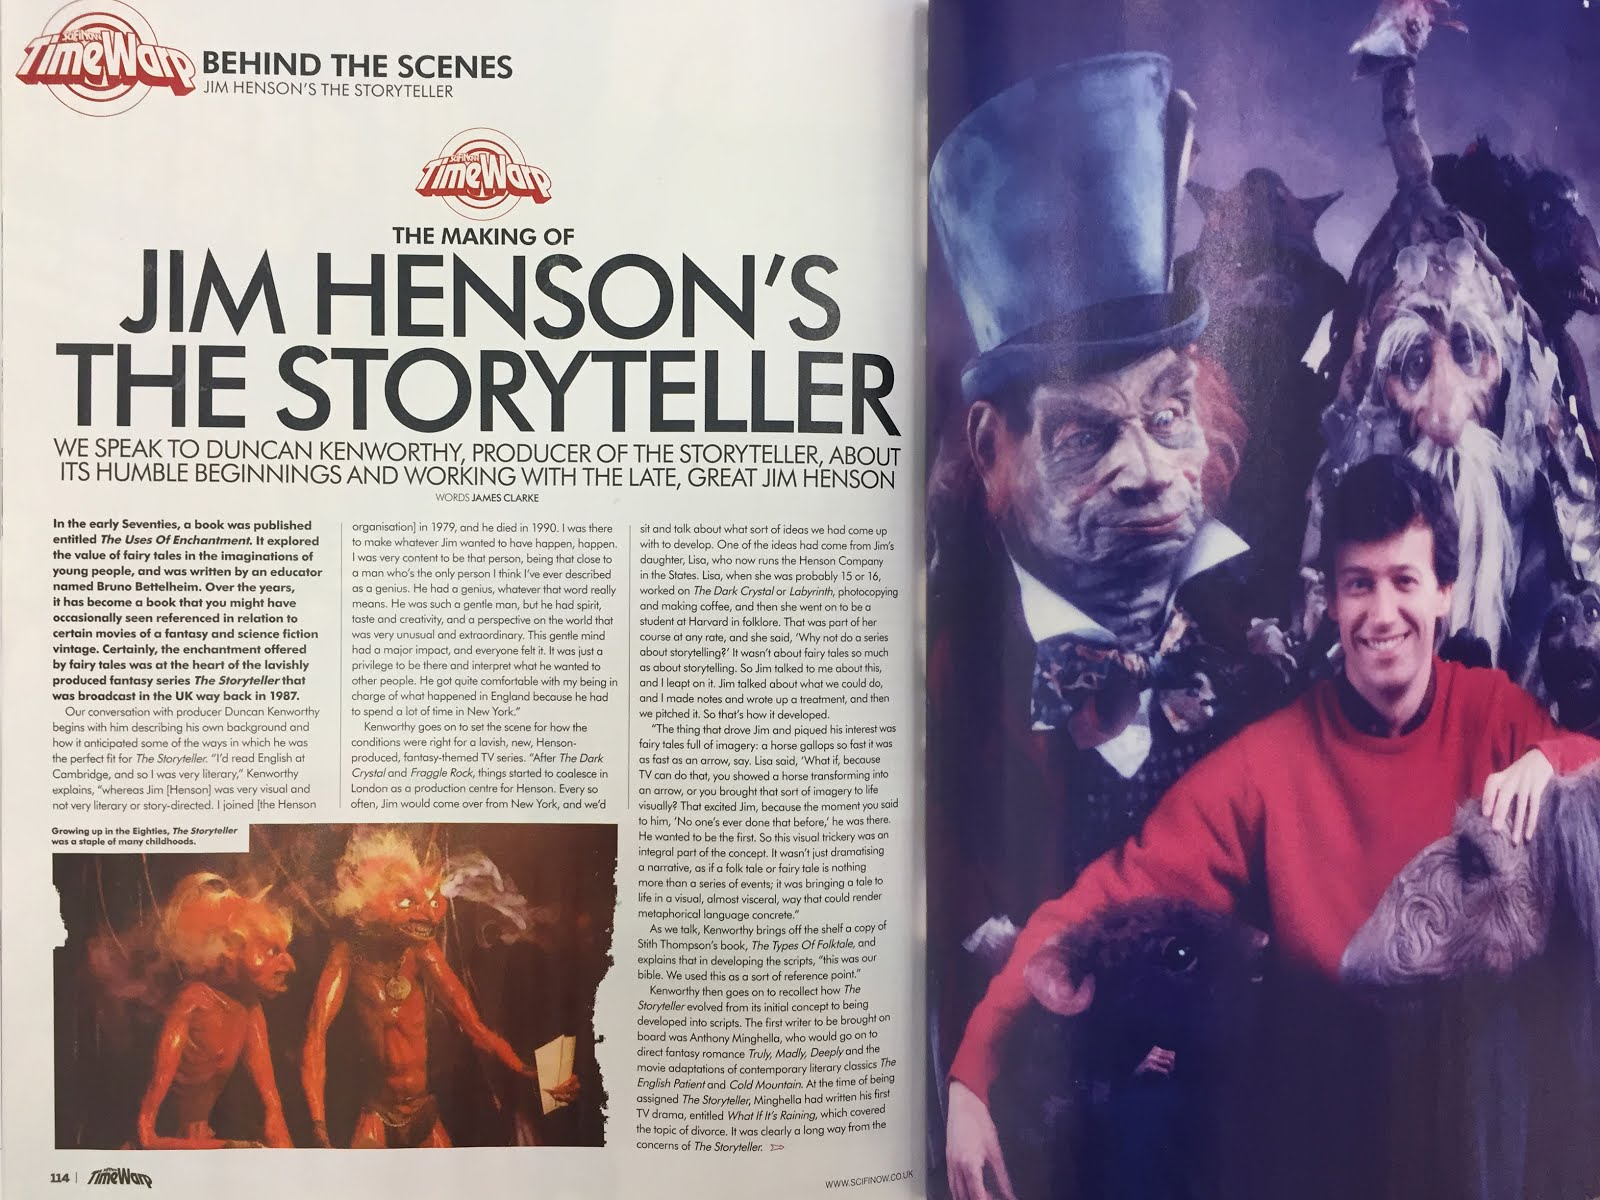 the relationship between jim hensons dark The center for puppetry arts the relationship between the center and jim henson began with kermit the frog and henson center for puppetry arts | jim henson.